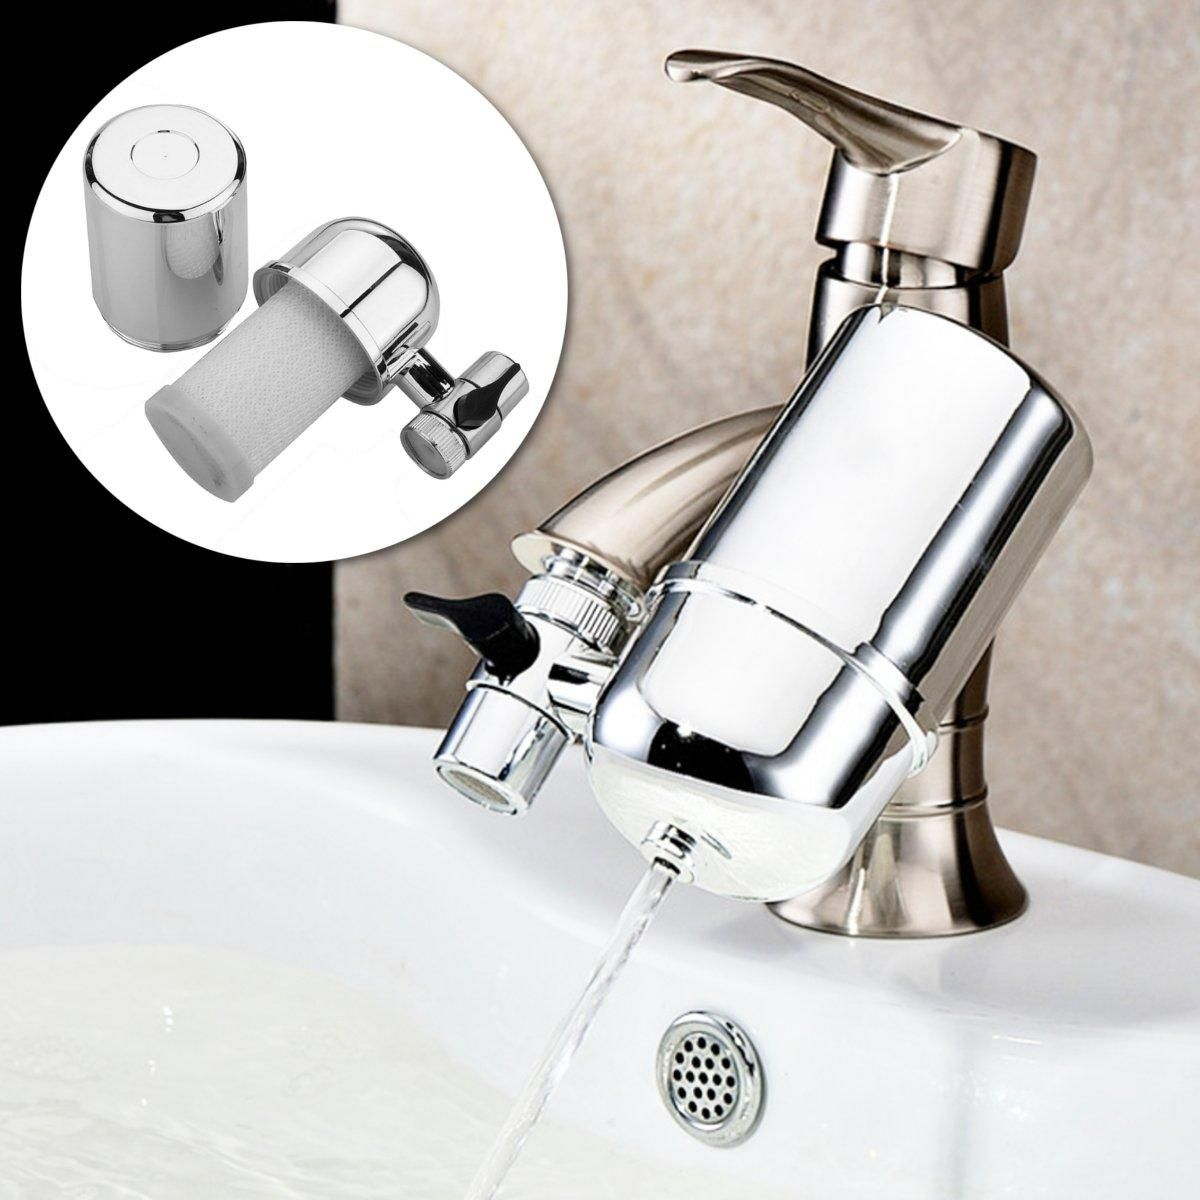 Bathroom Kitchen Water Filter Faucet Water Ionier Remove Water Contaminants Alkaline Tap Water Ceramic Cartridge Purifier Faucets From Home And Garden On Banggo Filtered Water Faucet Water Filter Faucet